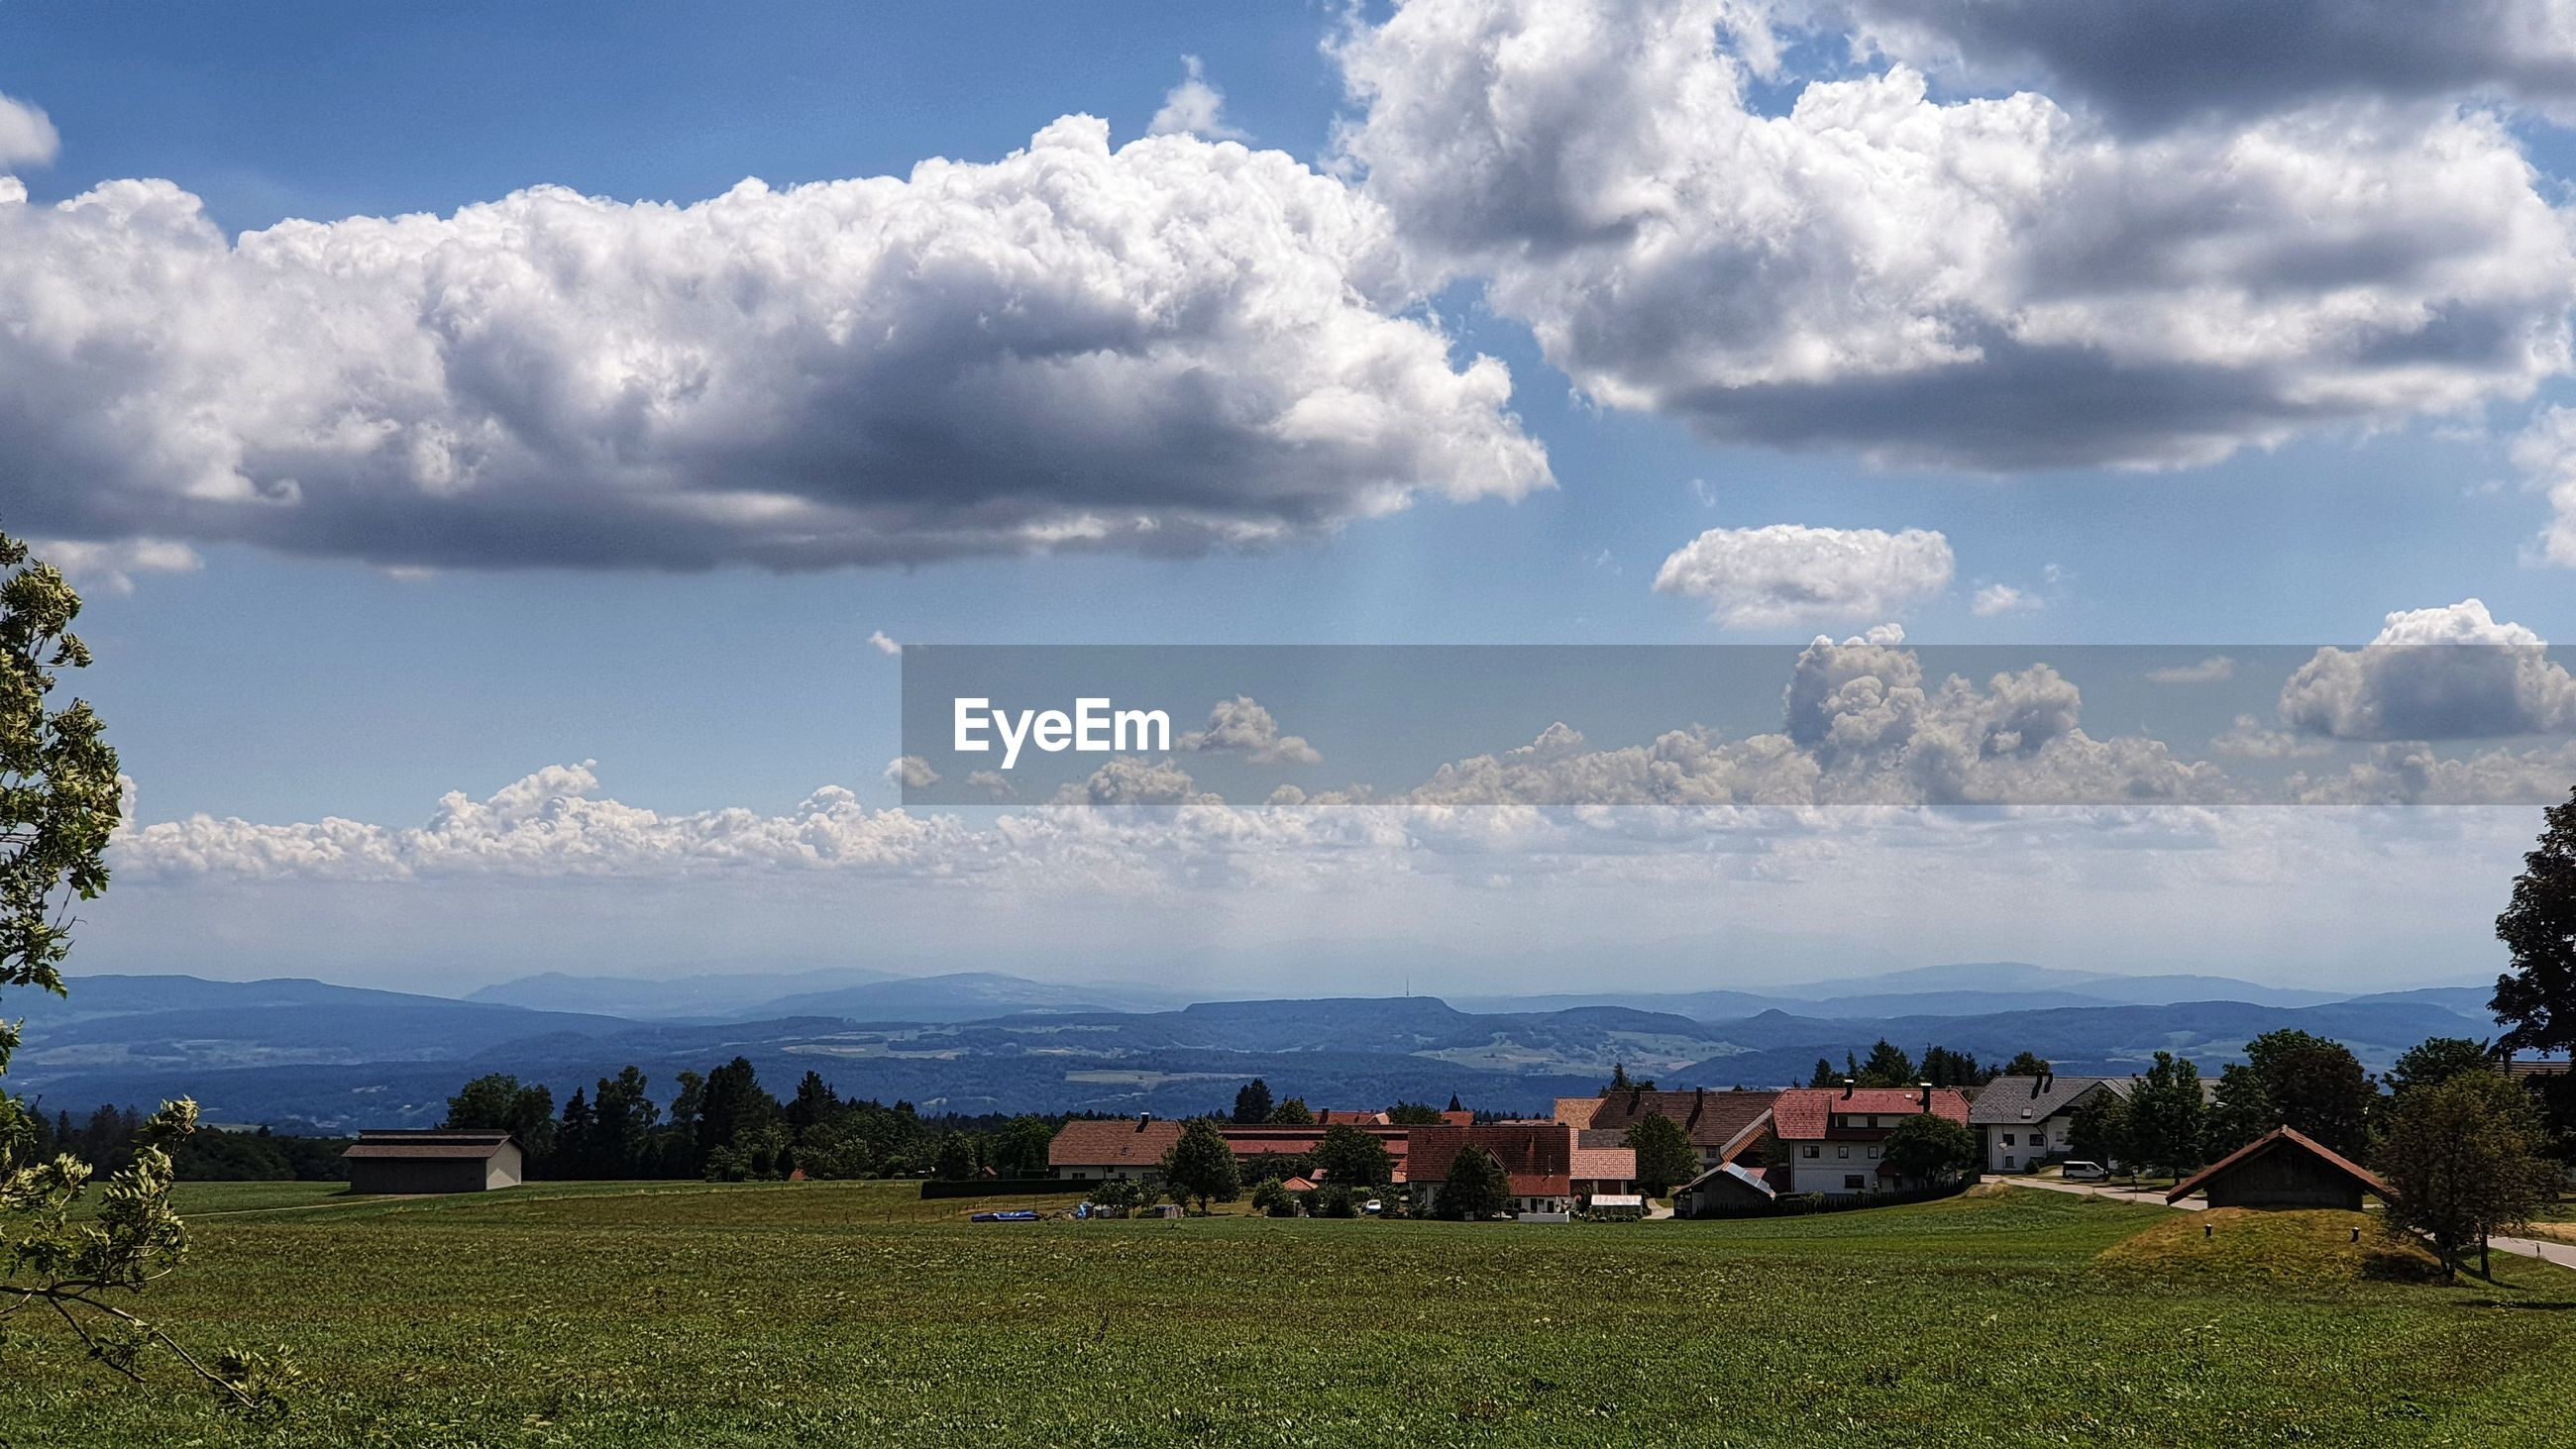 PANORAMIC VIEW OF HOUSES AND TREES AGAINST SKY